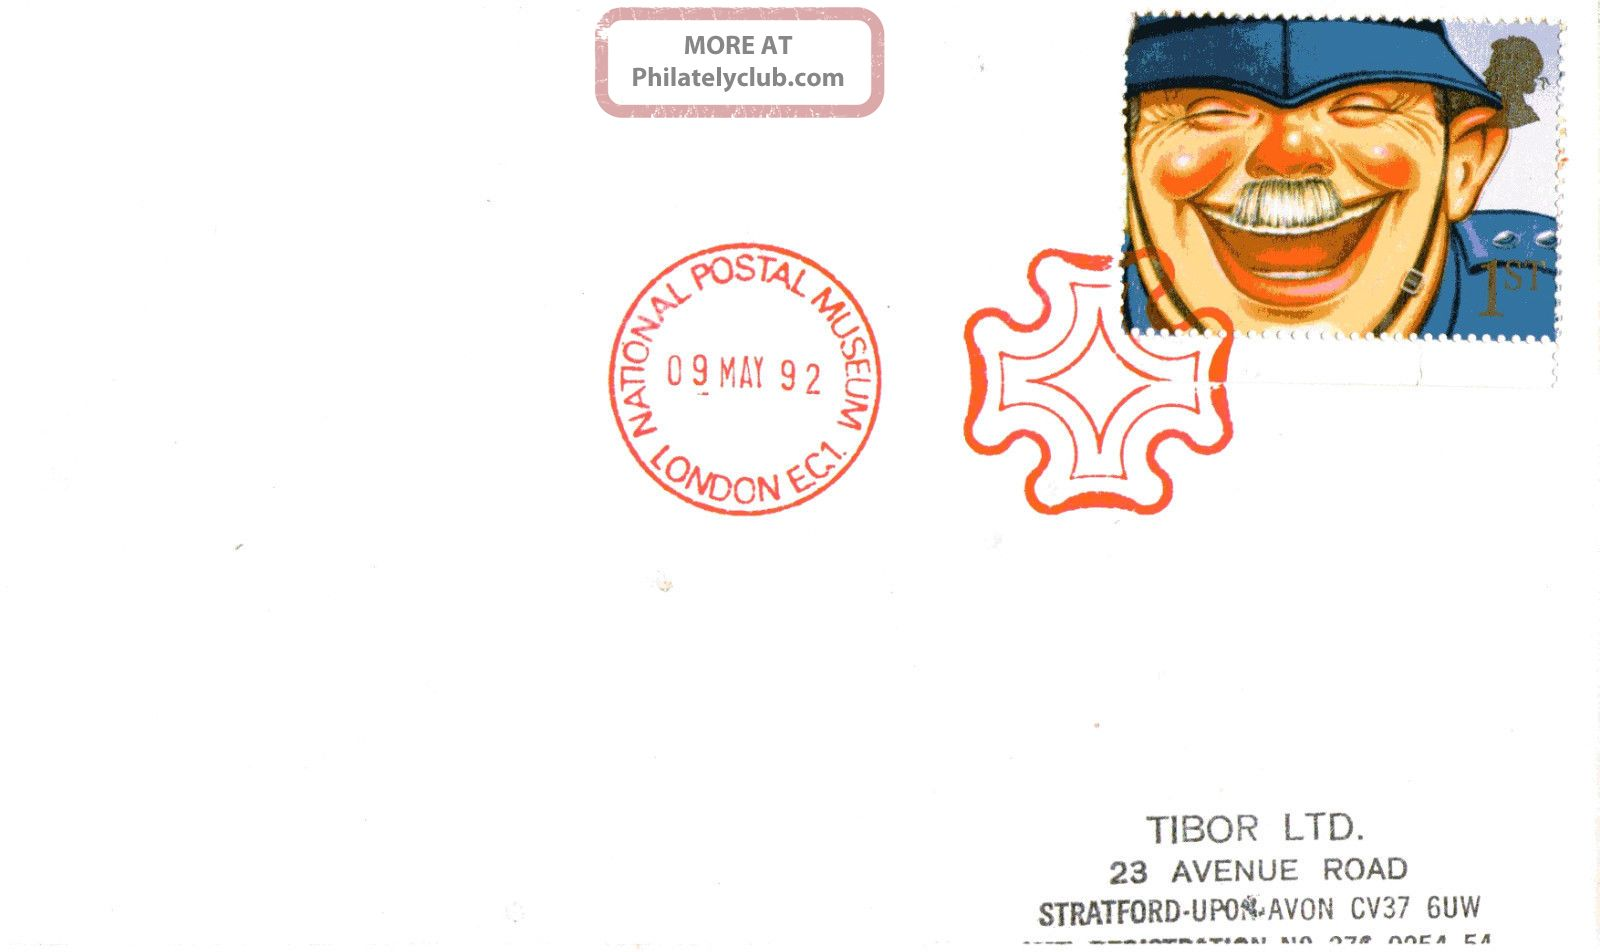 9 May 1992 Greetings Laughing Policeman Cover Npm Maltese Cross London Ec1 Shs Topical Stamps photo